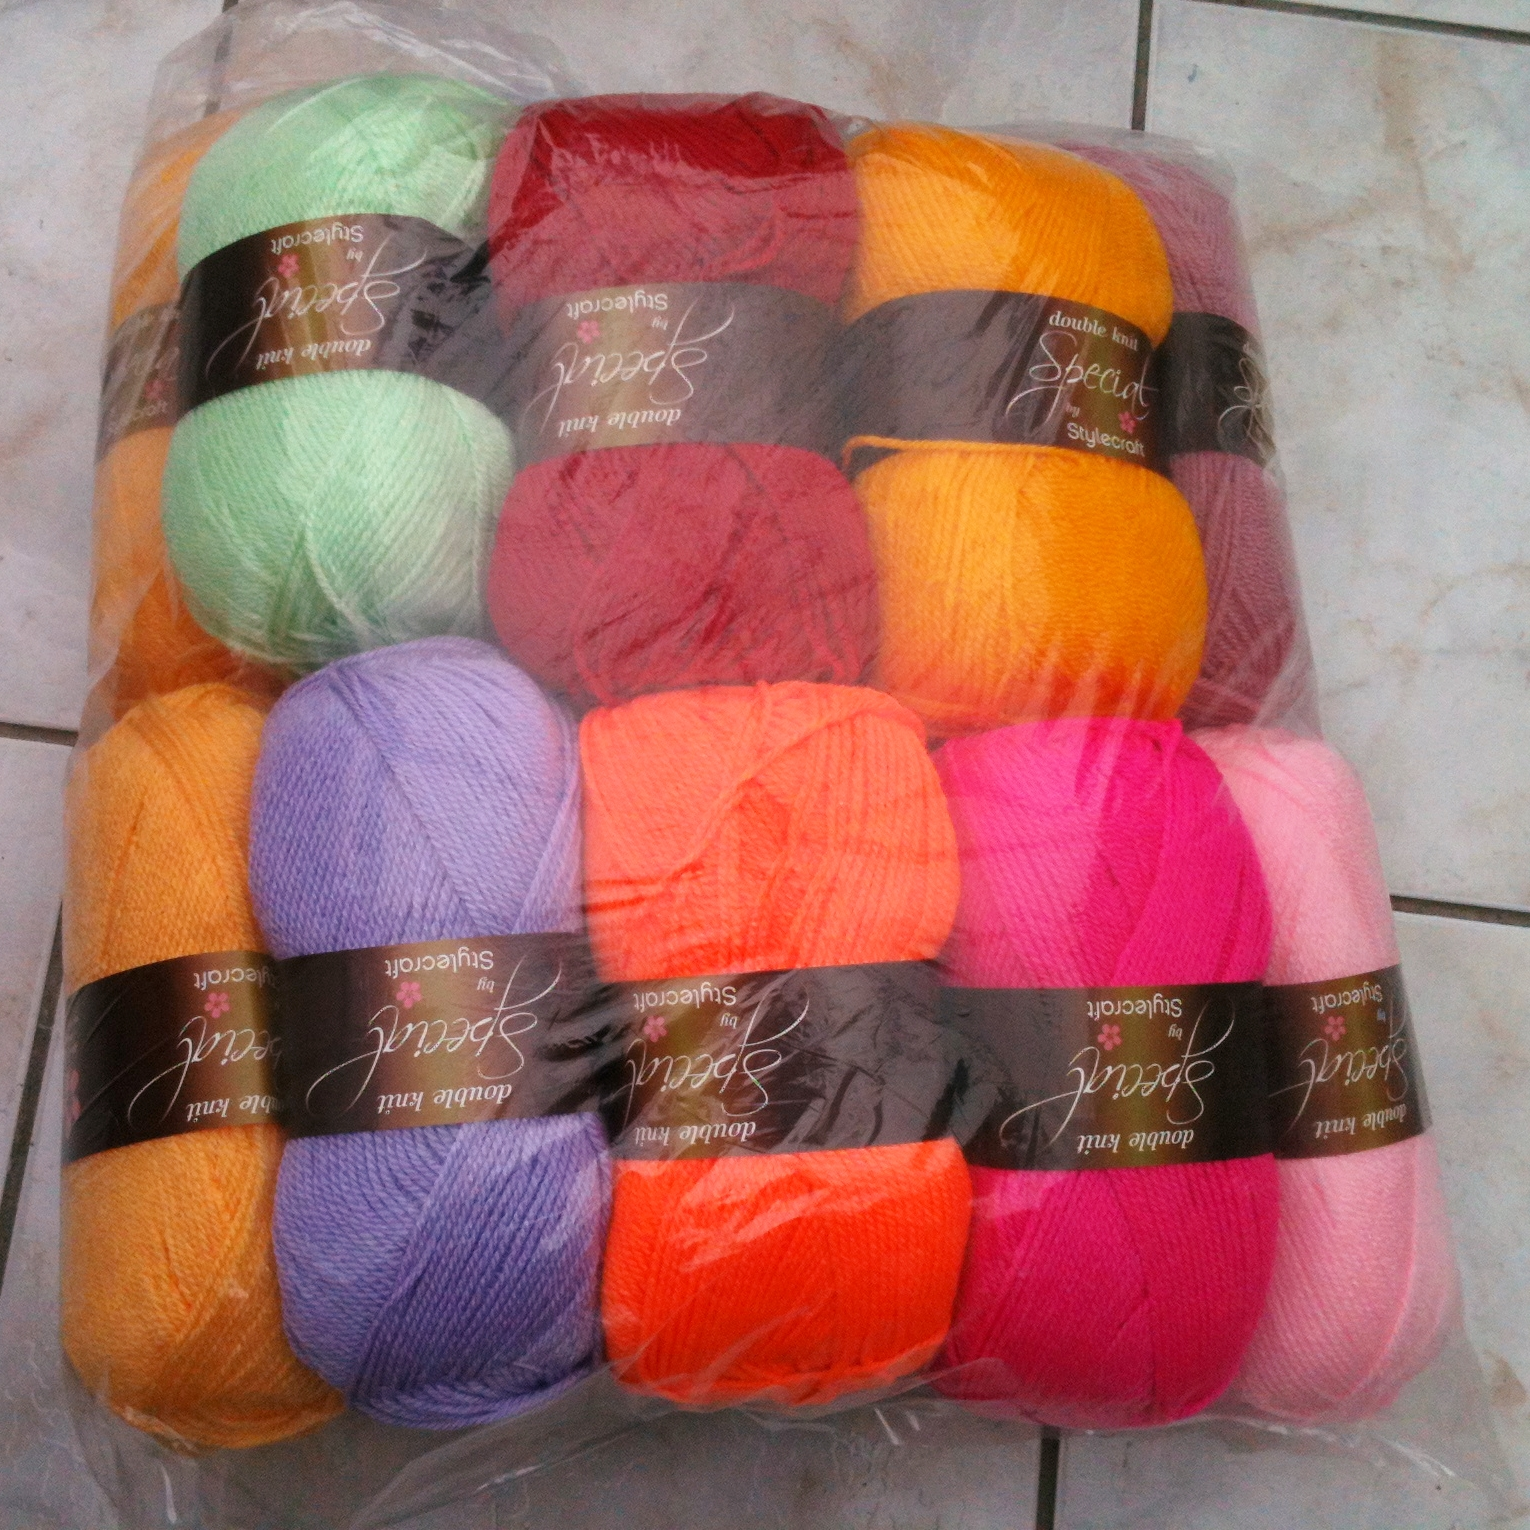 New balls of Stylecraft Special Double Knit